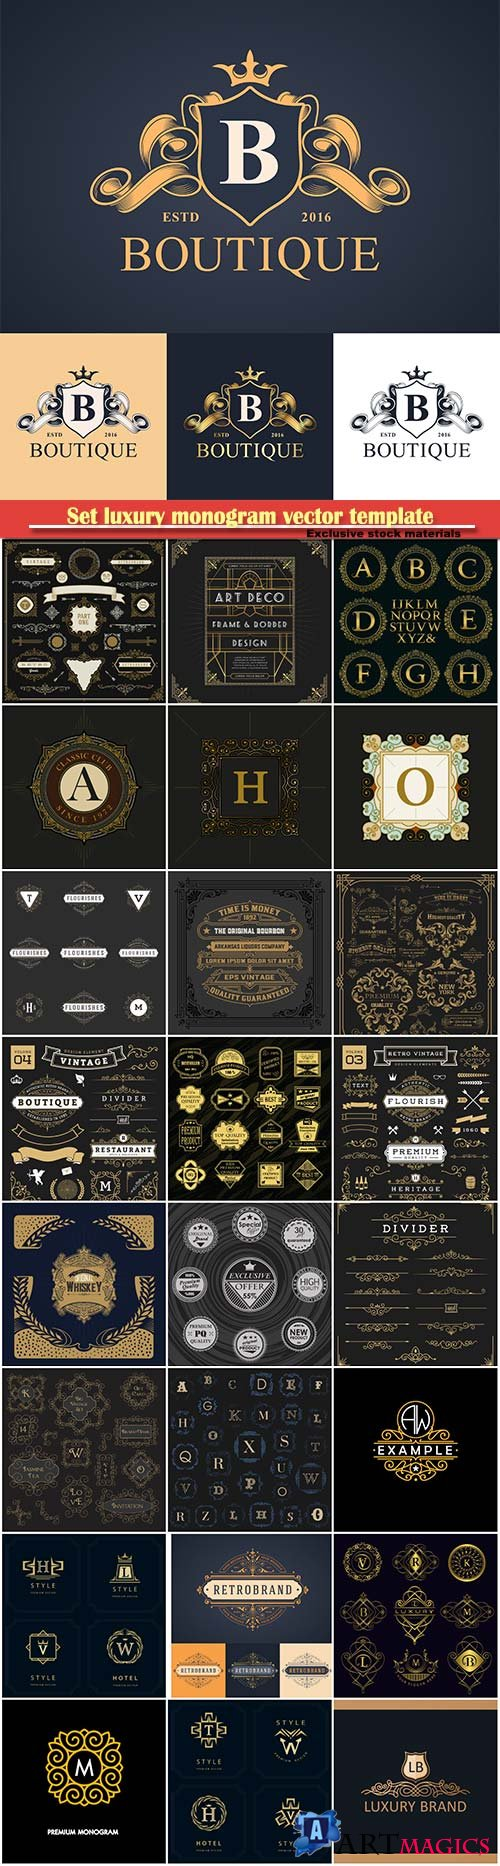 Set luxury monogram vector template, logos, badges, symbols # 11